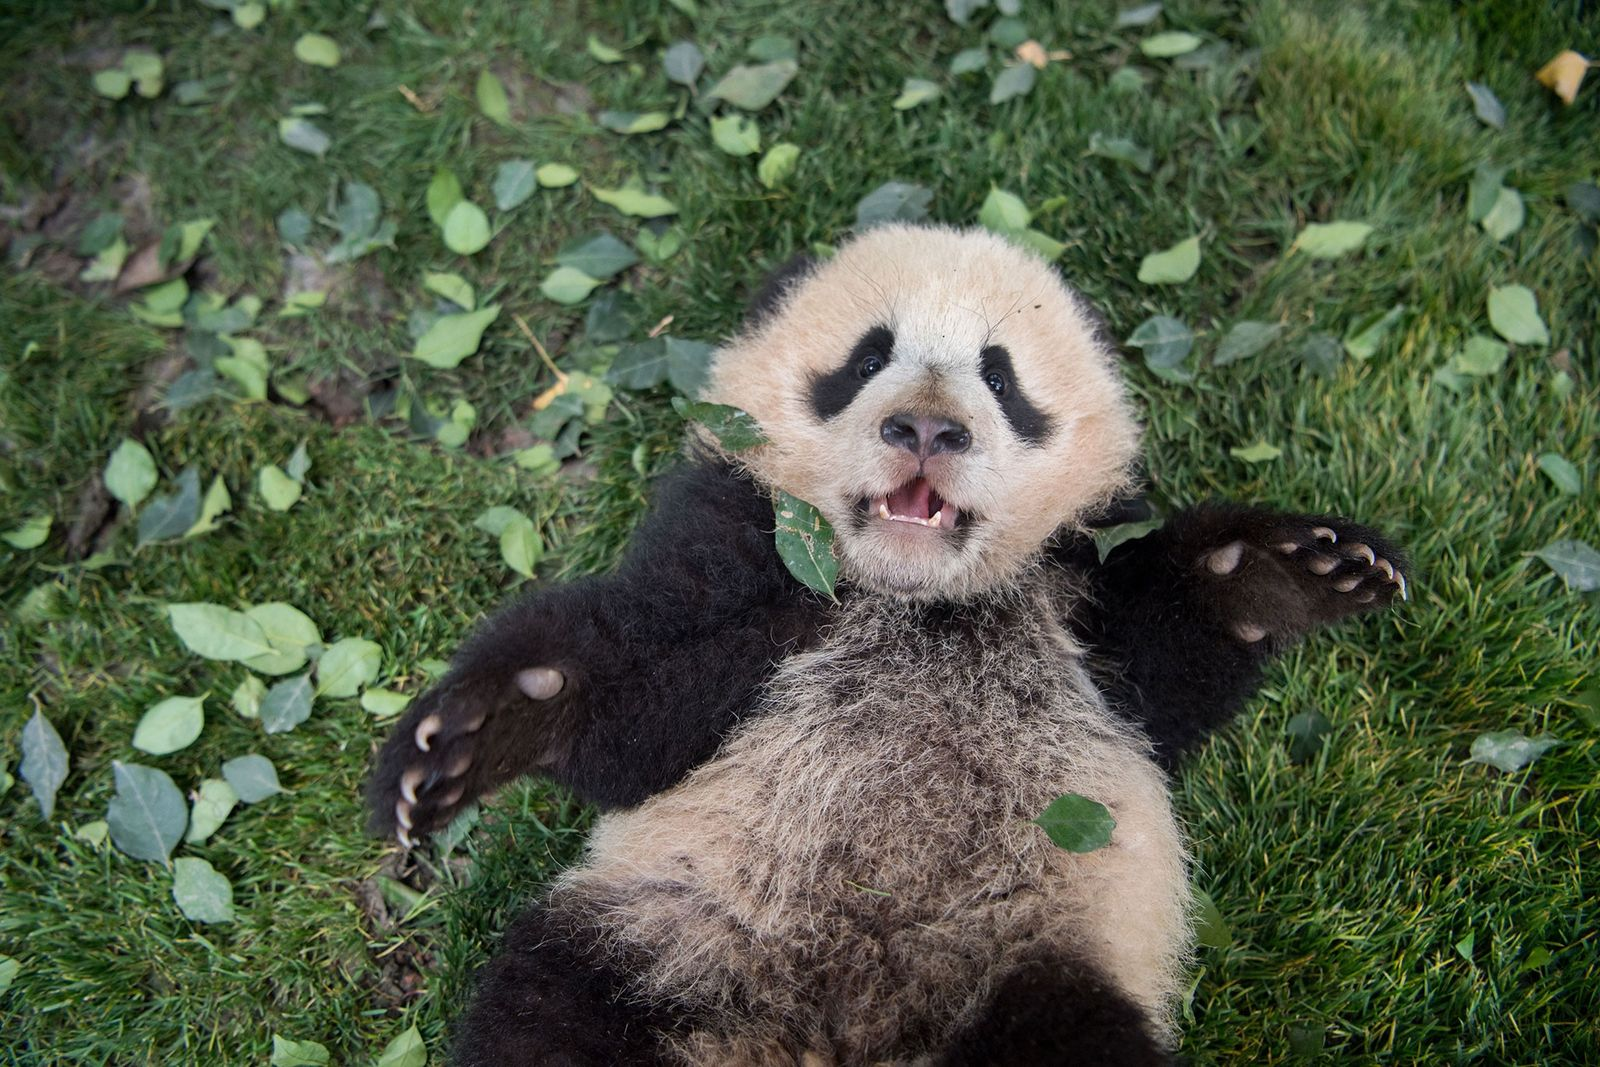 The Unusual Difficulty Of Photographing Pandas